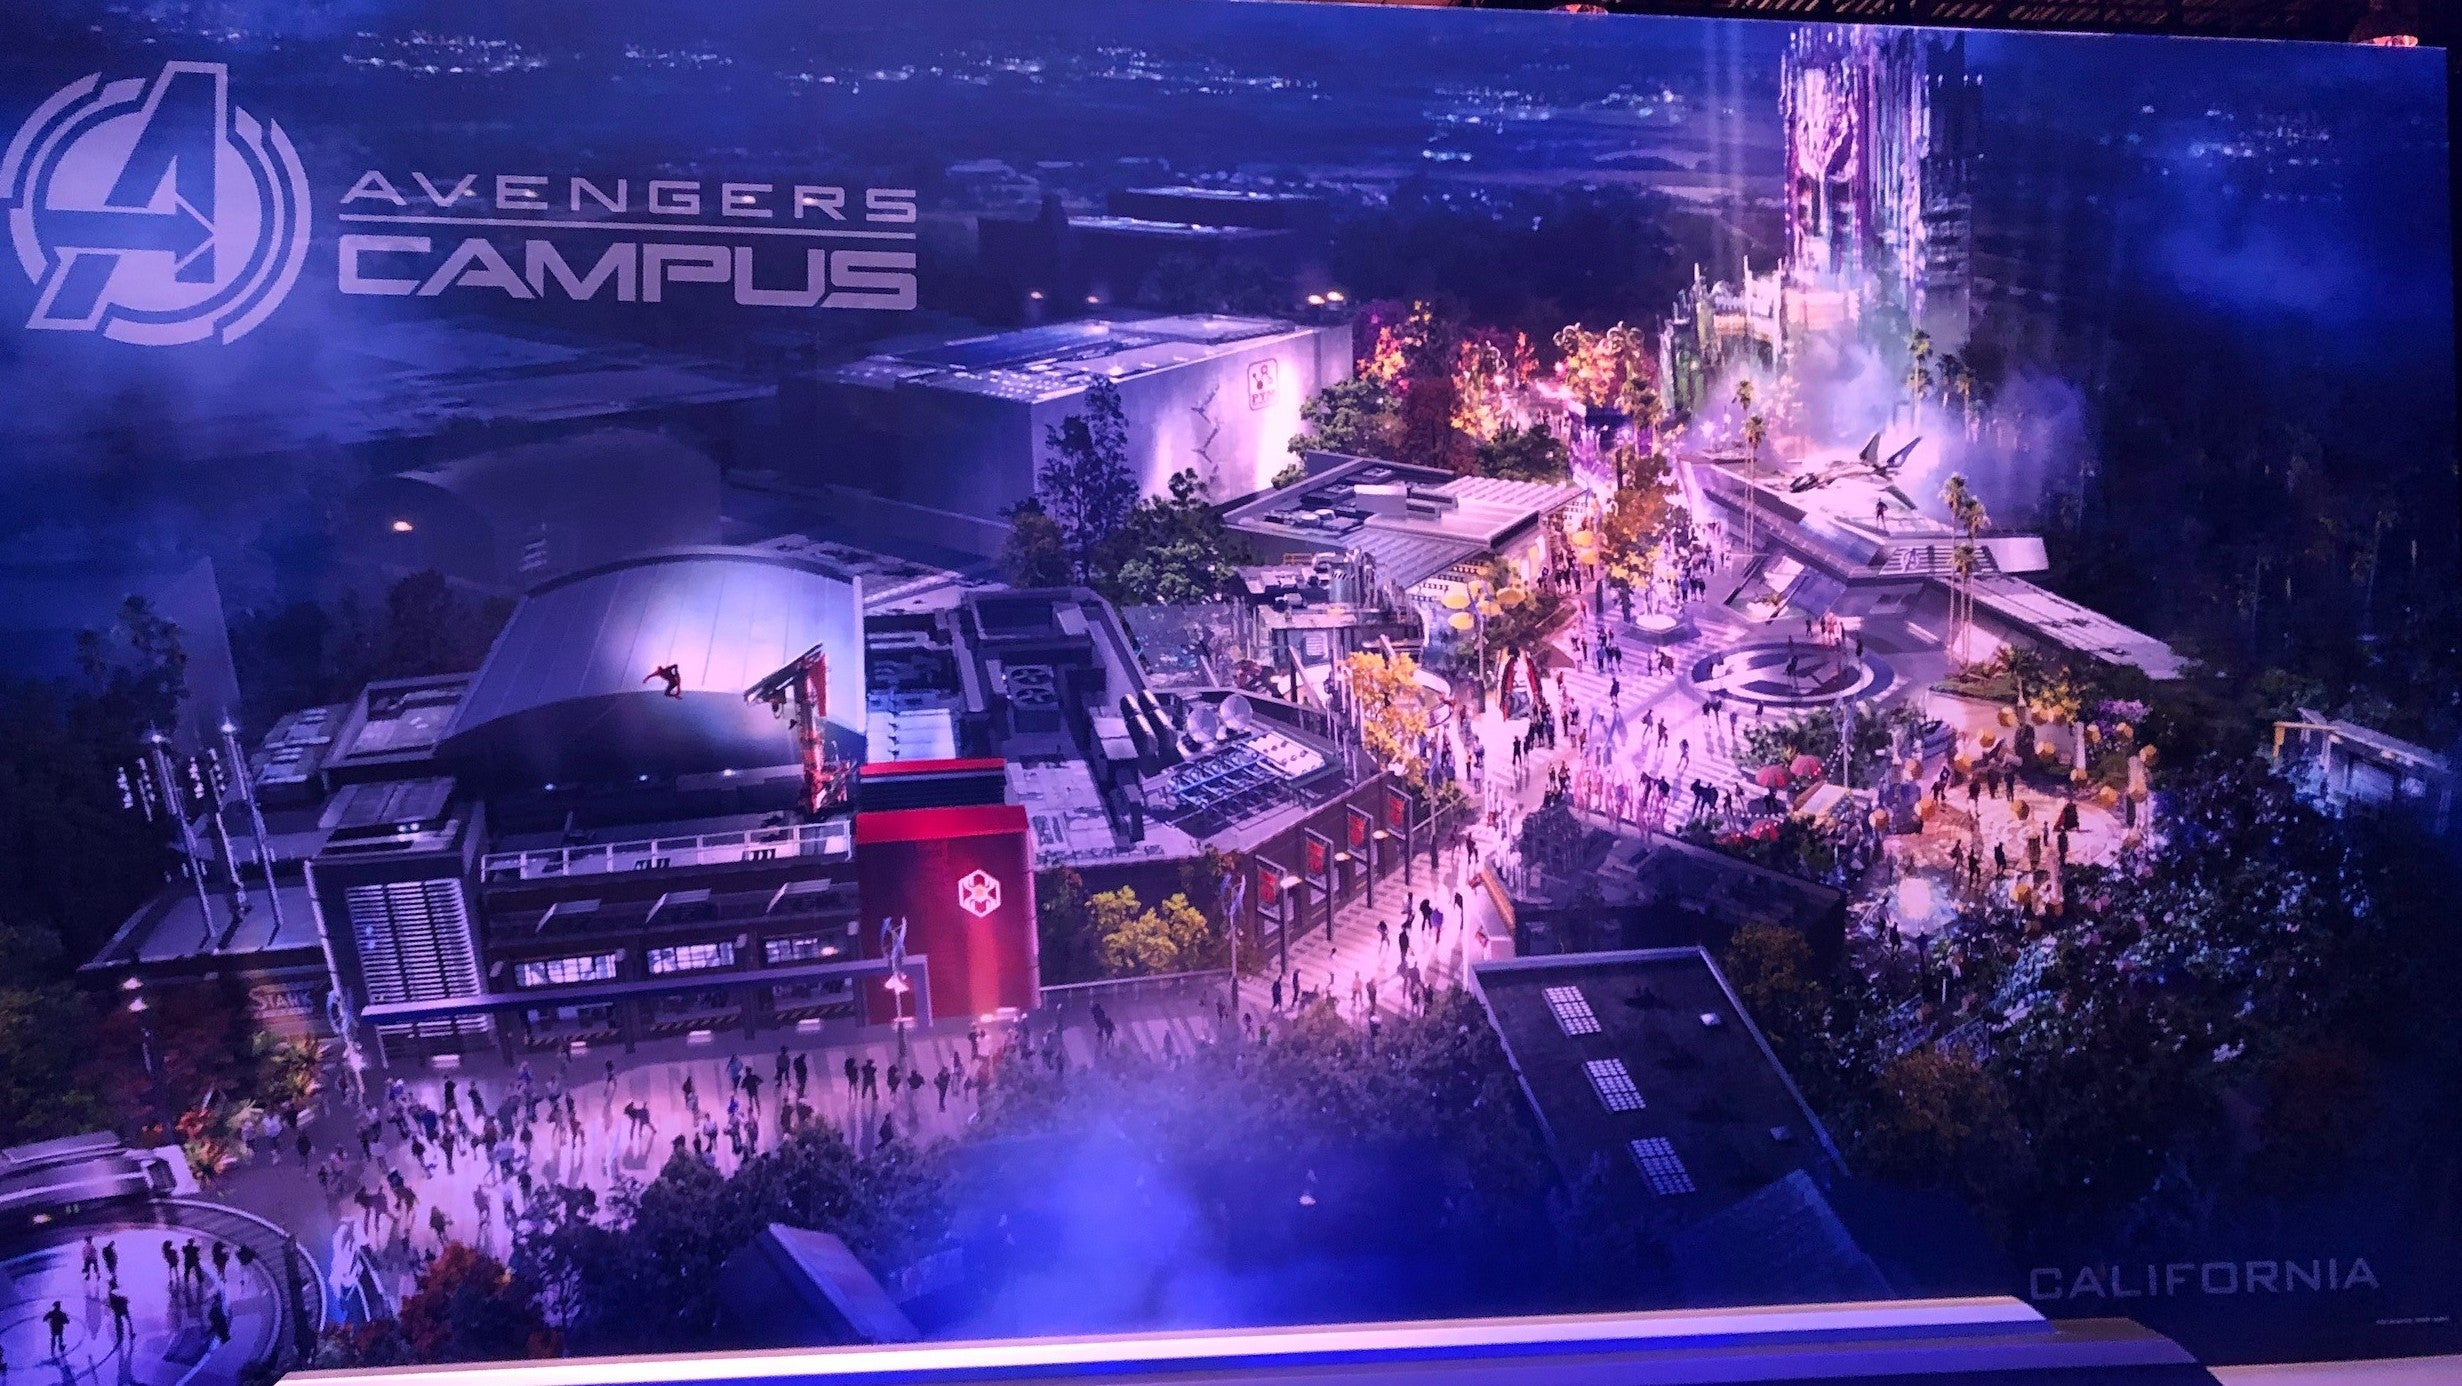 Everything We Just Learned About Avengers Campus, Disney's New Marvel Land